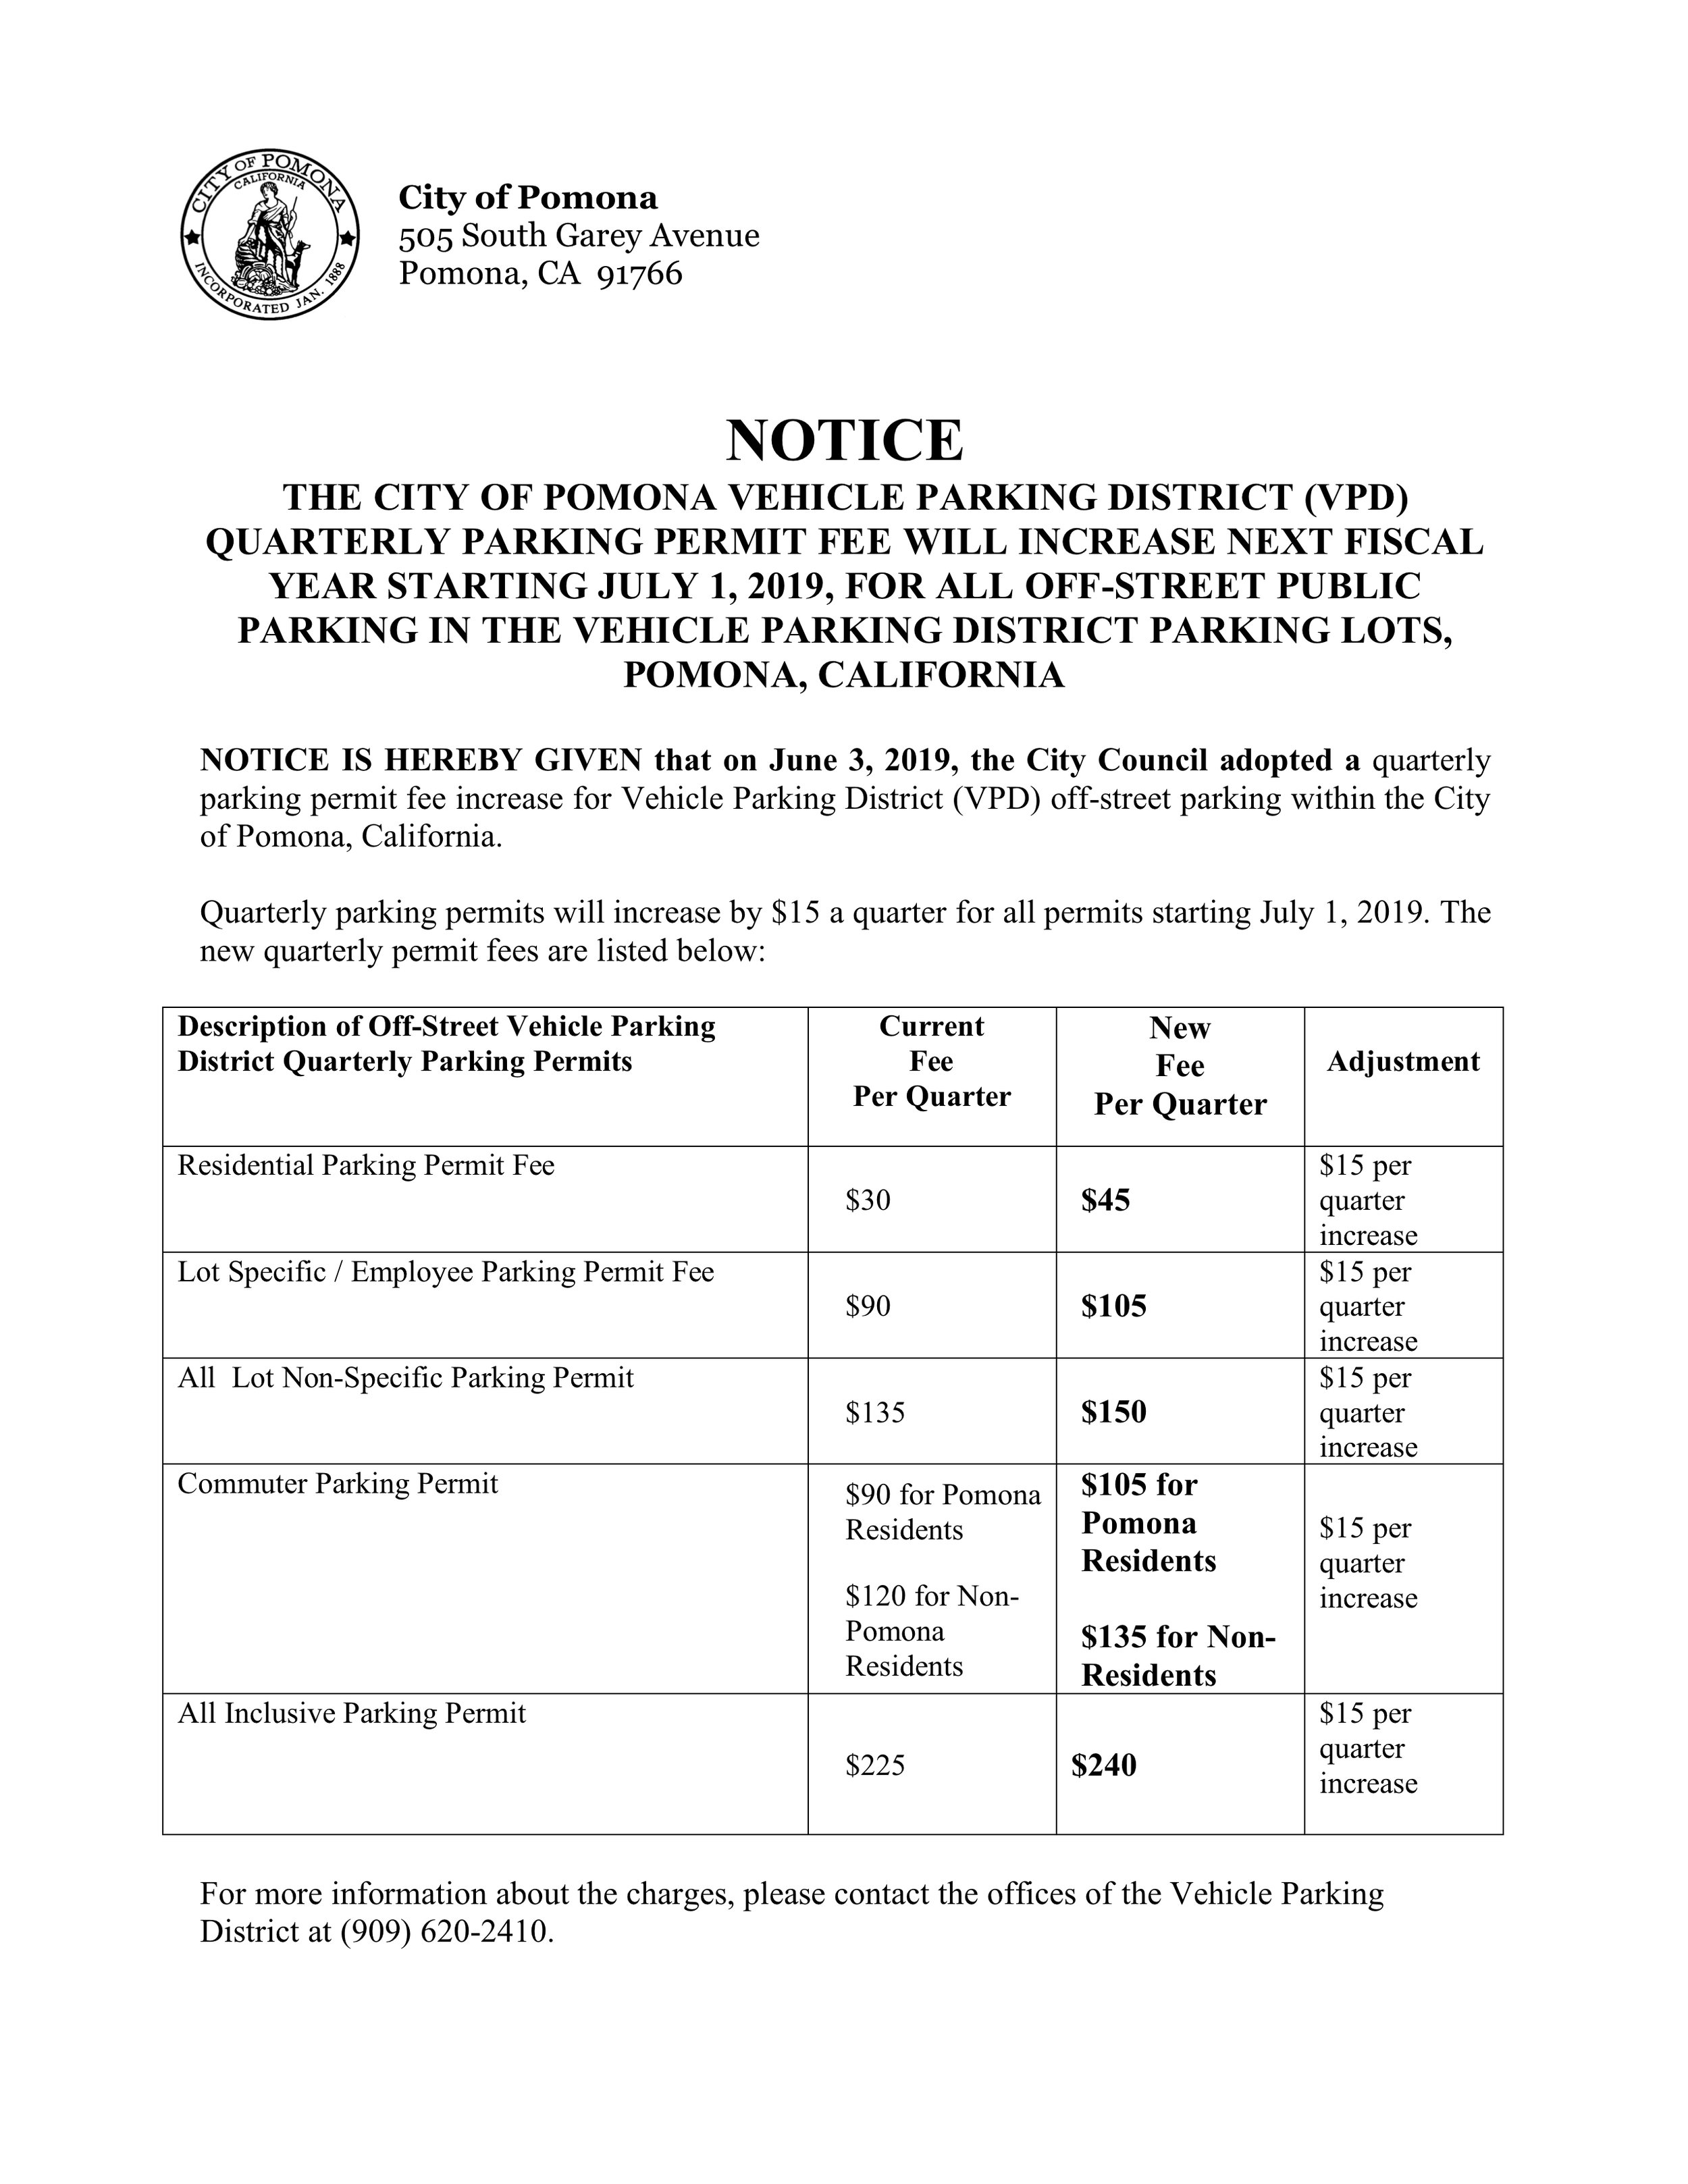 06419 PH Notice of Off Street Quarterly Parking Permit Fee Amendment 2019 POSTING .jpg